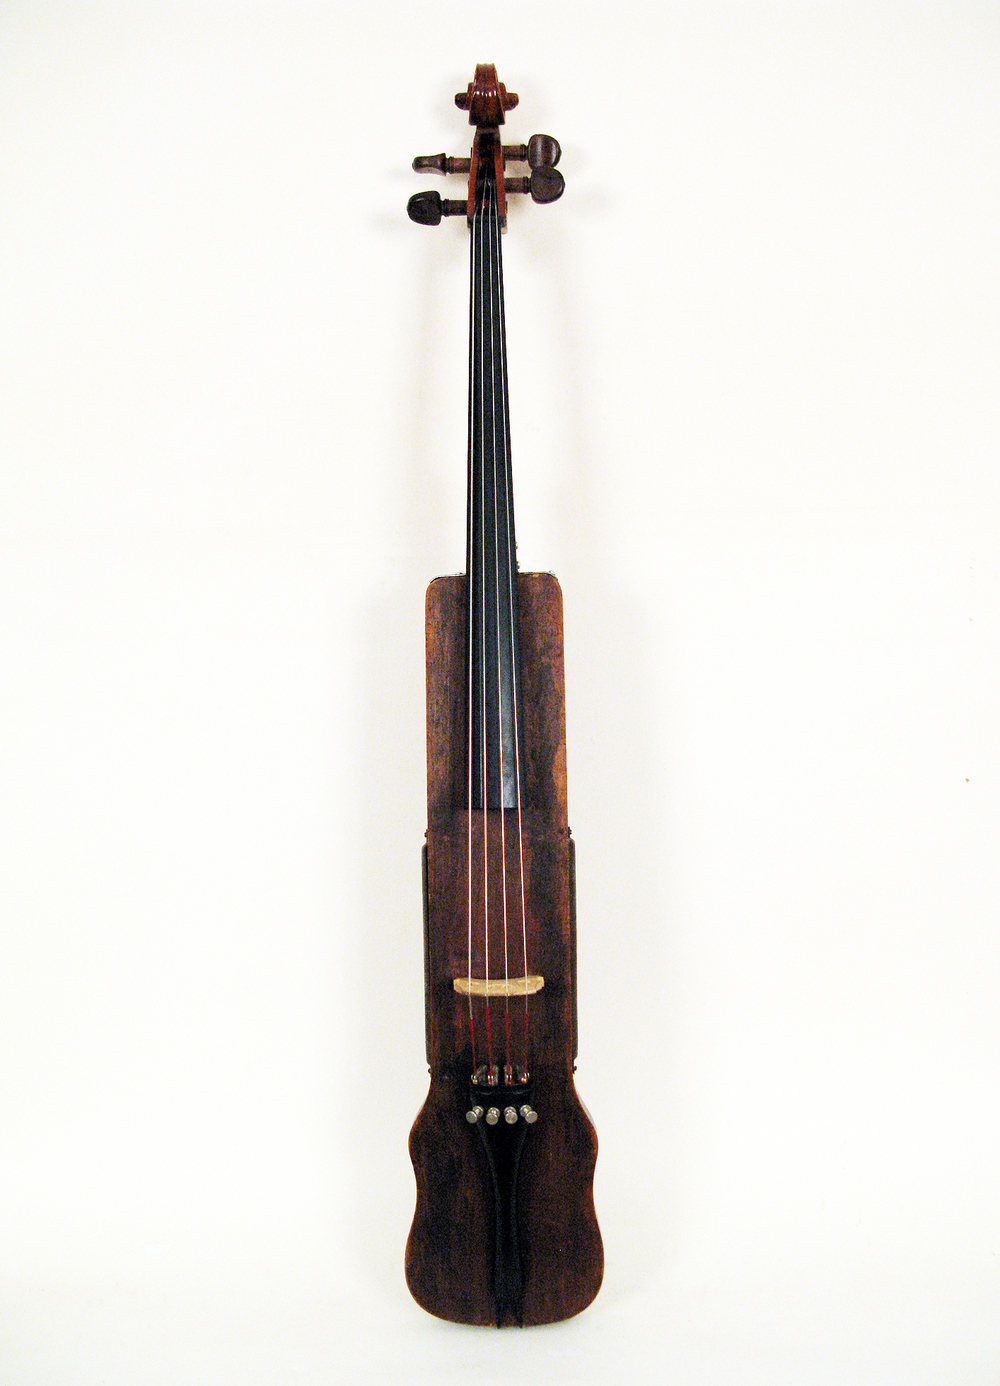 Ukelin Cello.jpg